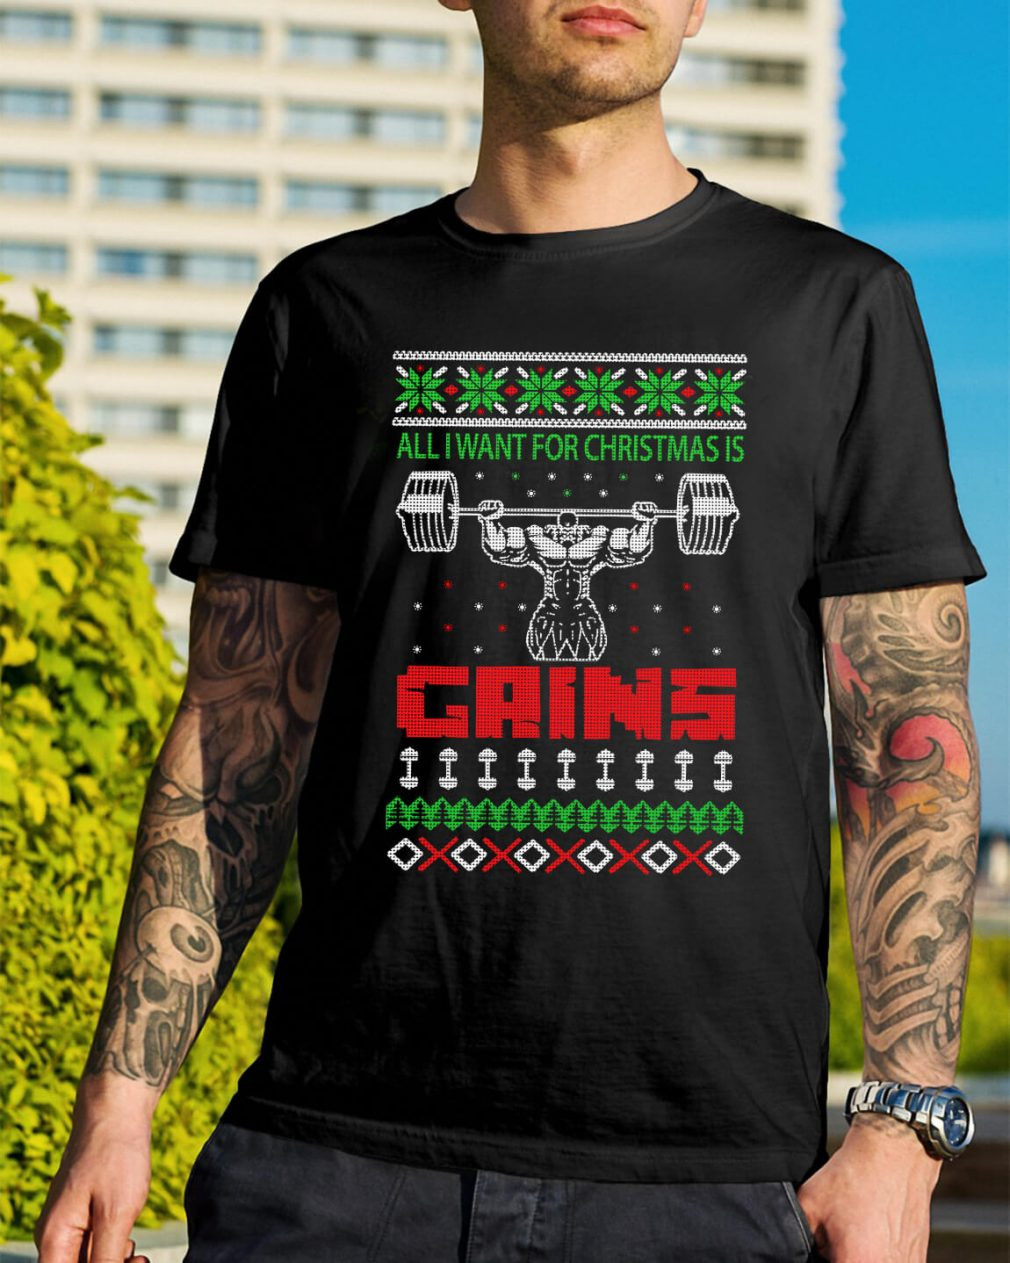 All I want for Christmas is Gains ugly Guys Shirt